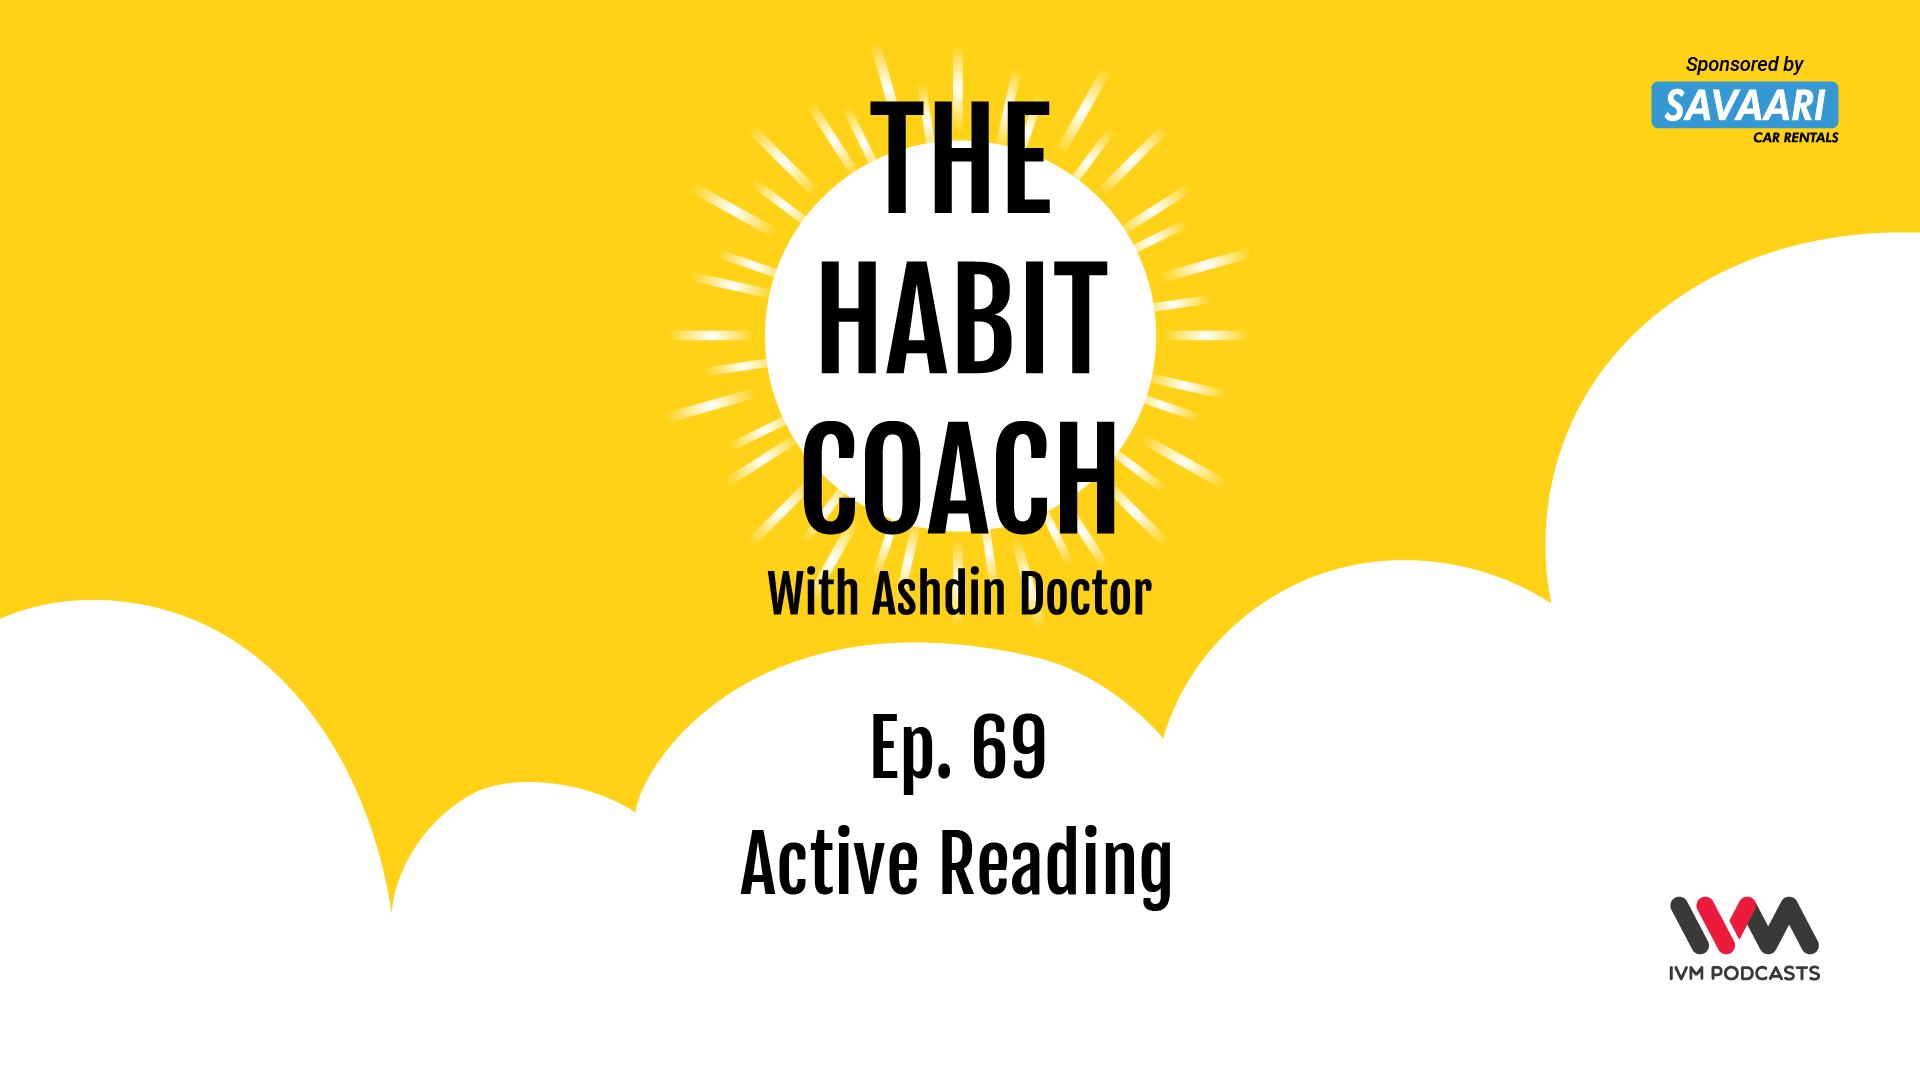 TheHabitCoachEpisode69.png